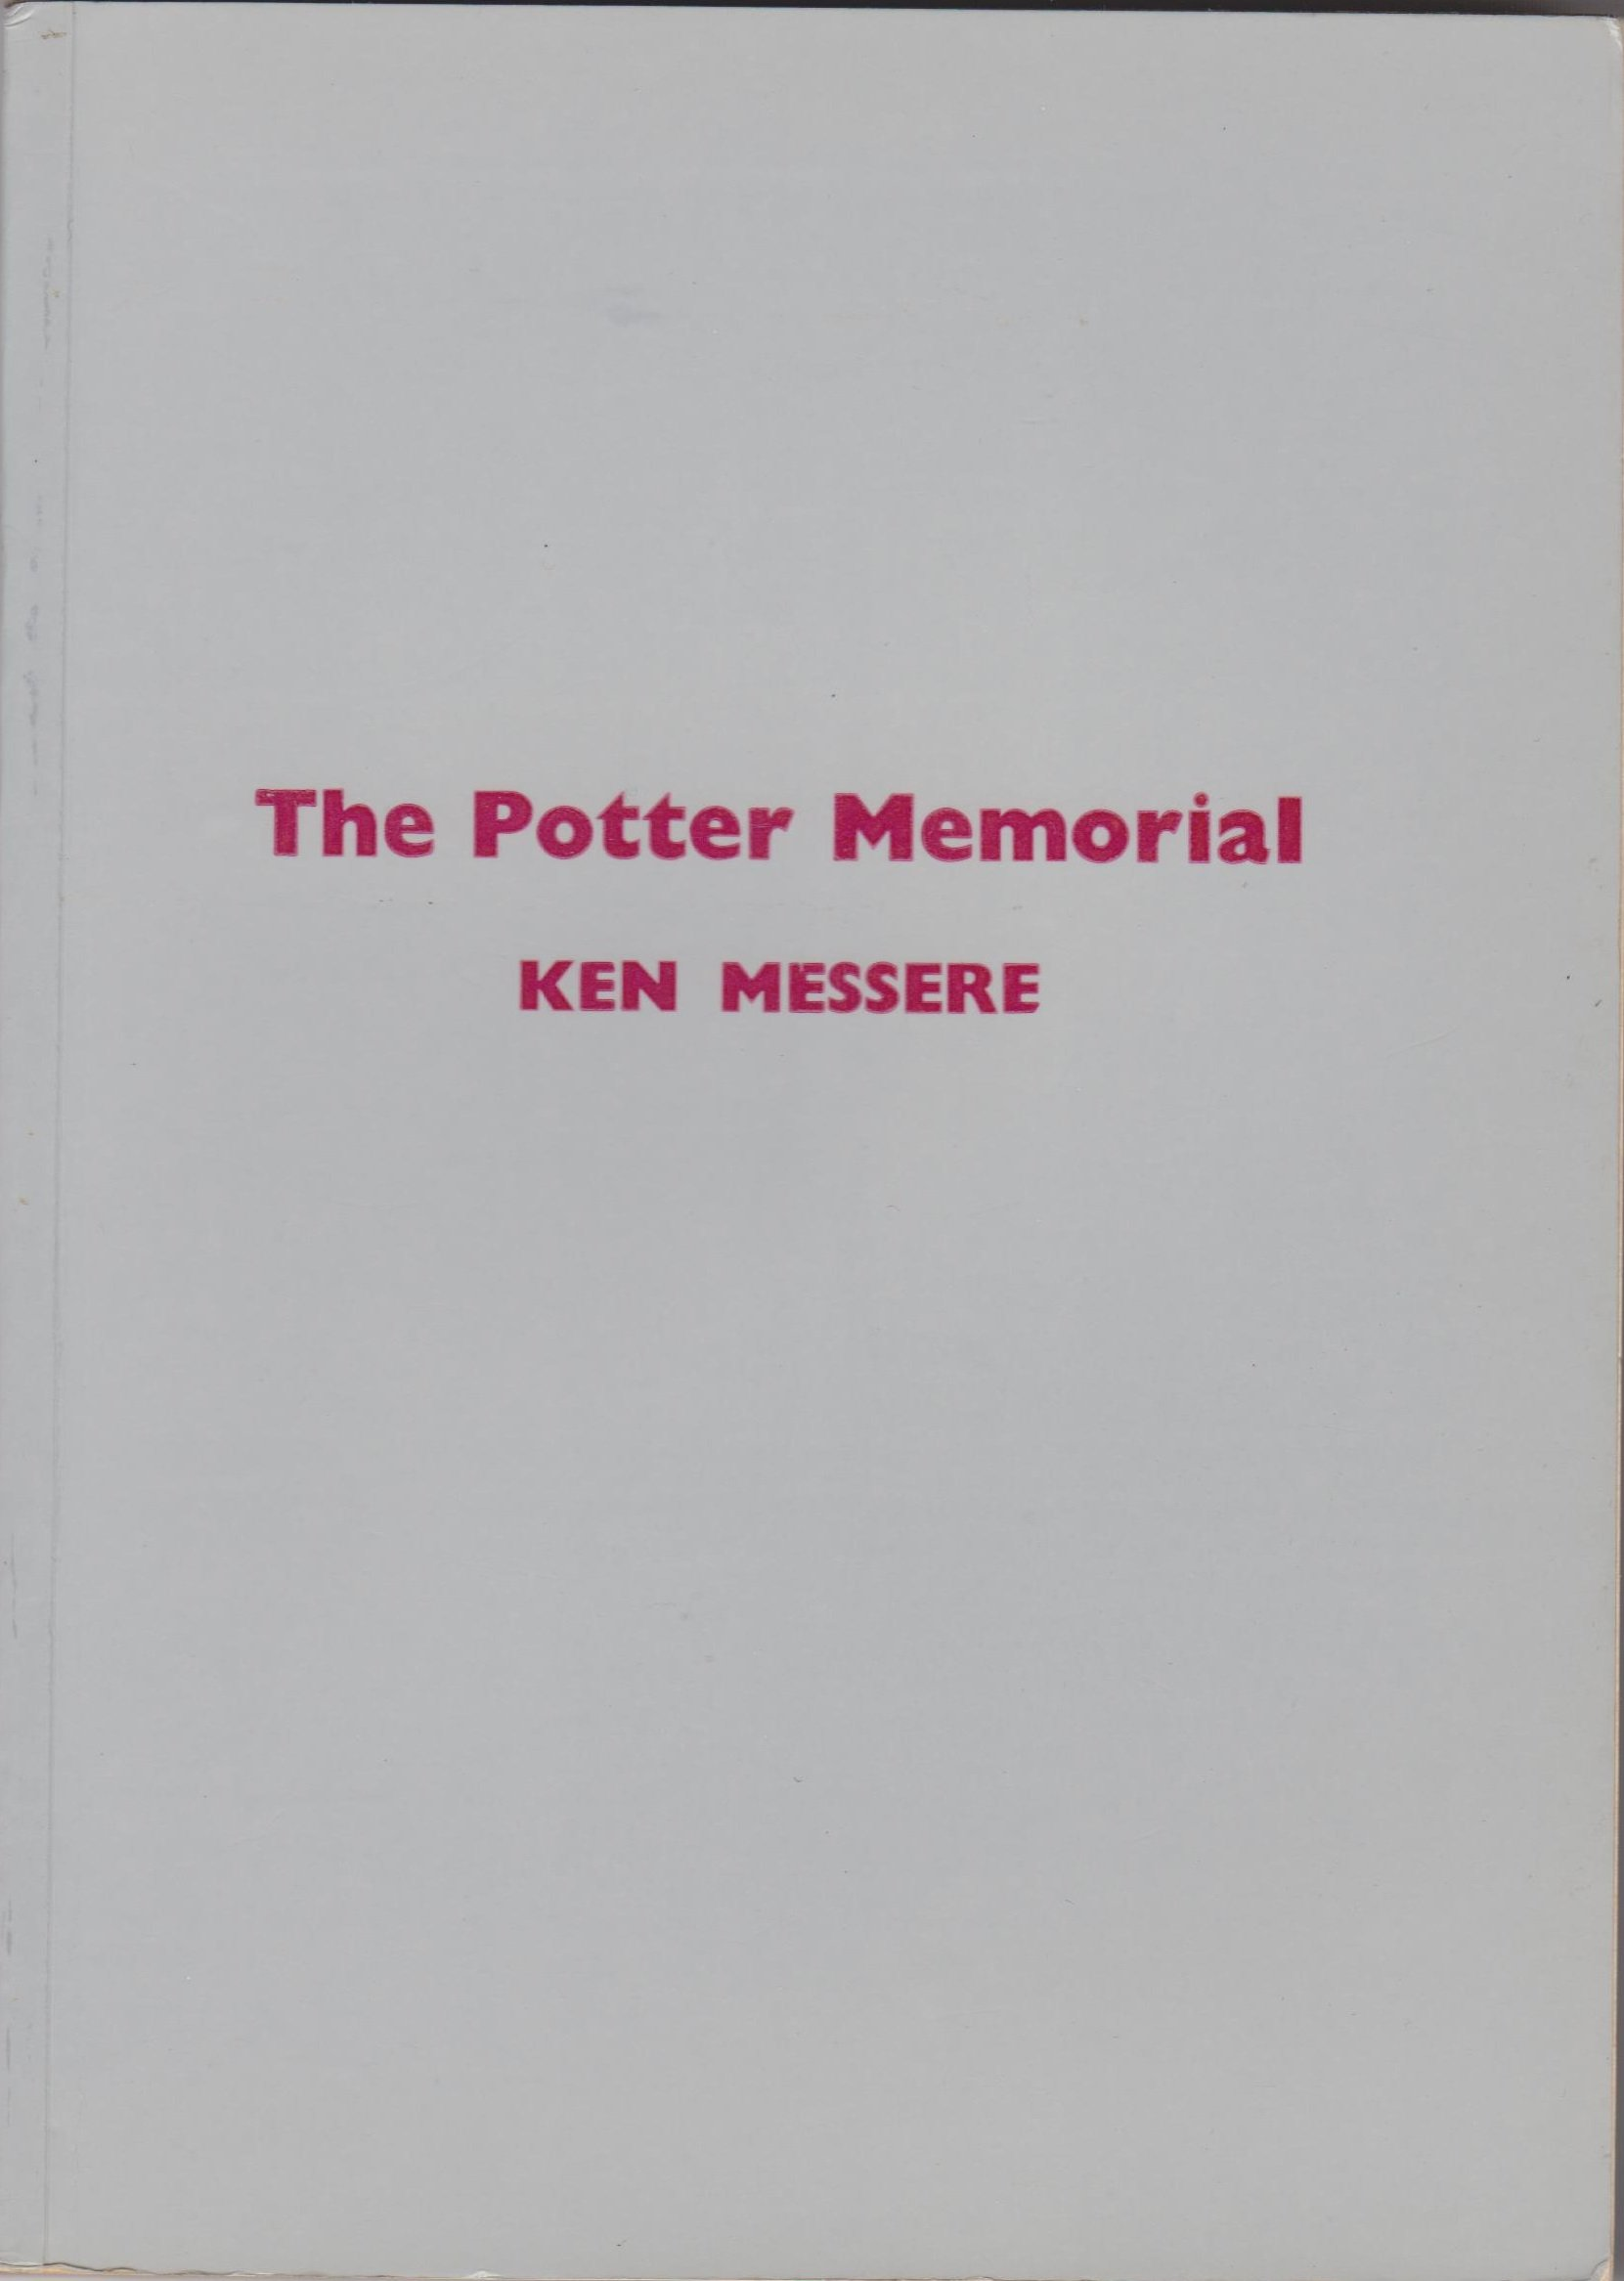 The Potter Memorial, Ken Messere, Chess (Sutton Coldfield), 1979